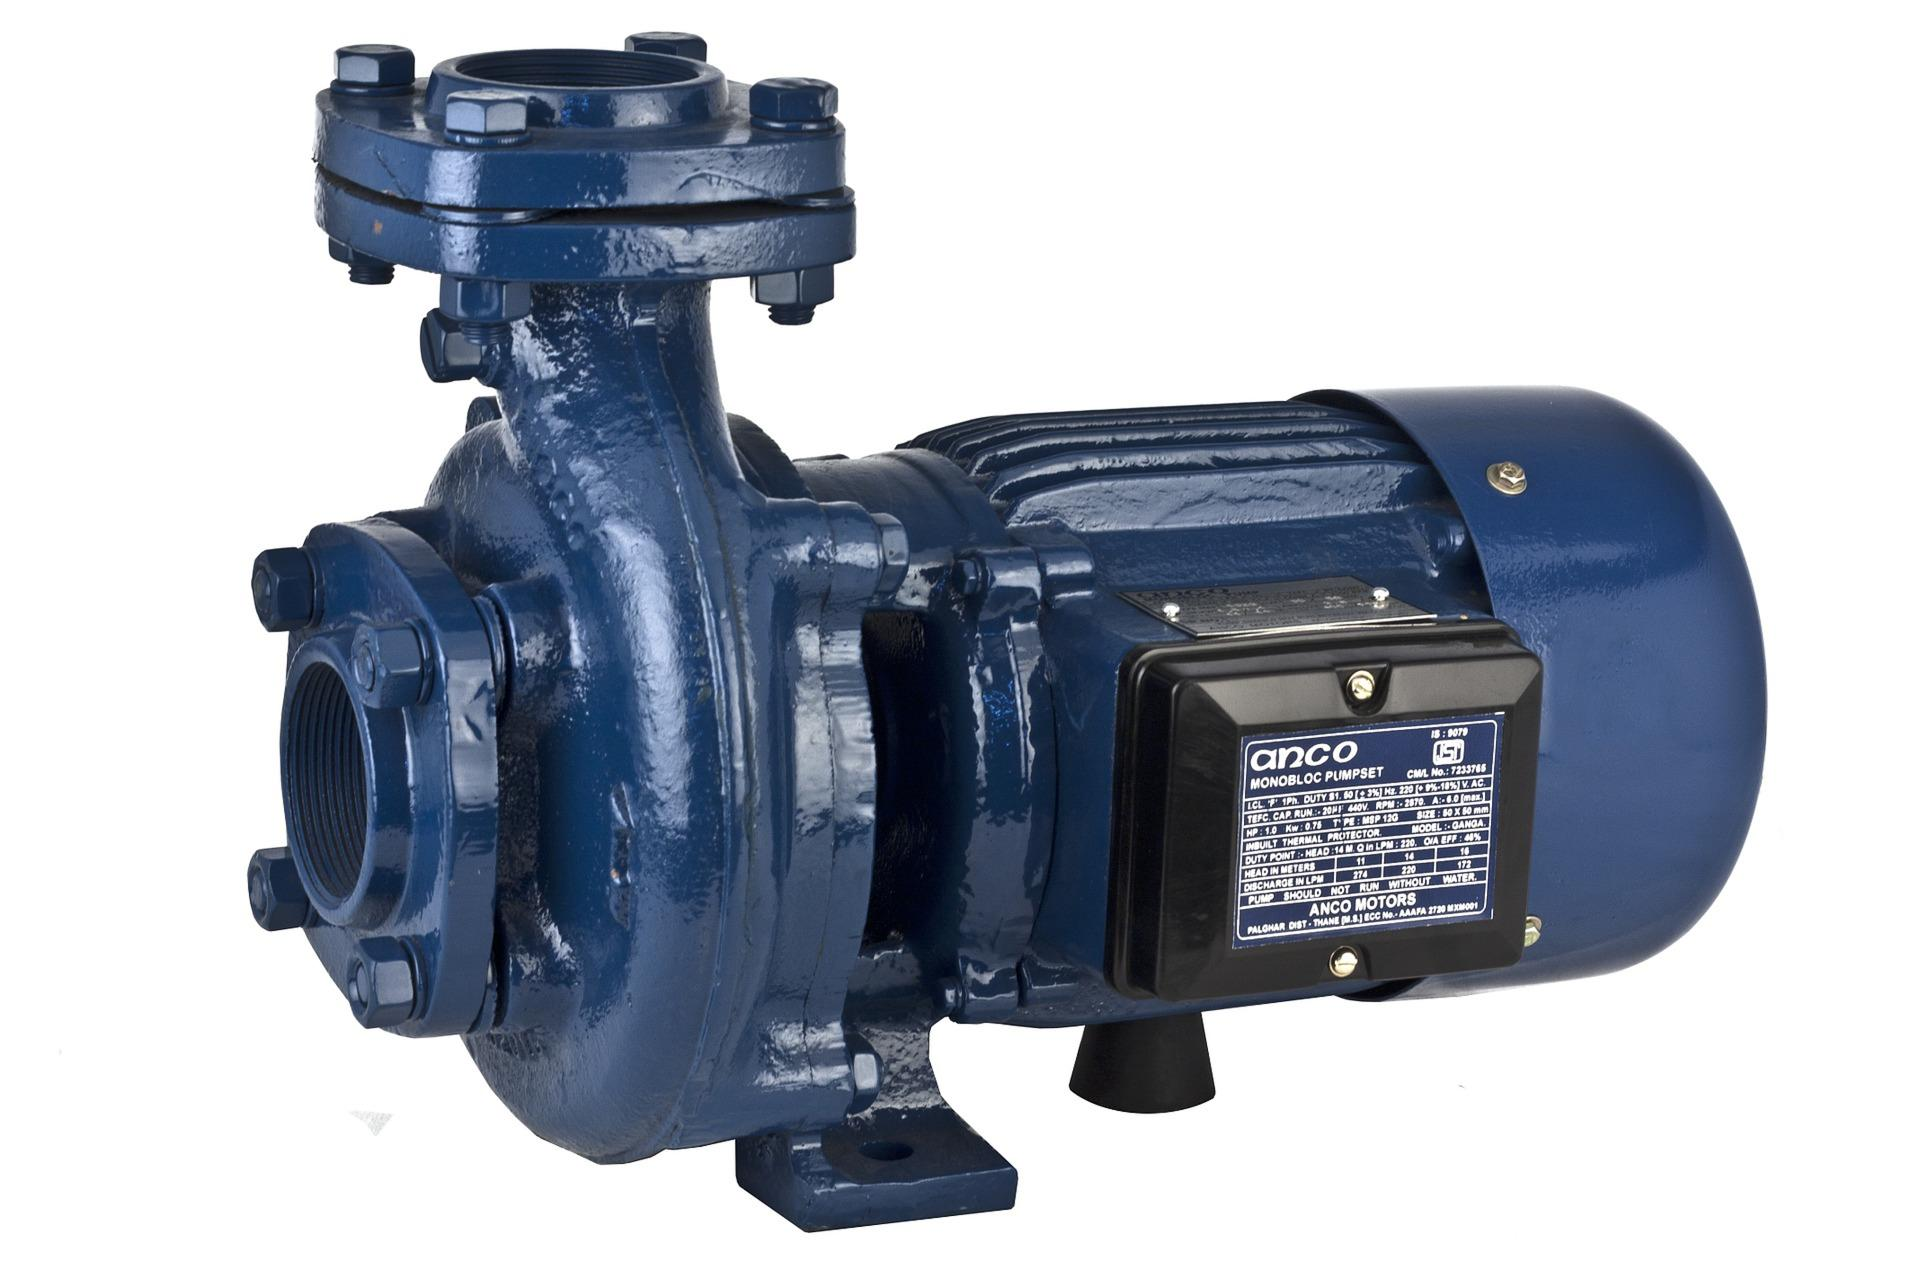 WANT TO PROTECT YOUR PUMPS?